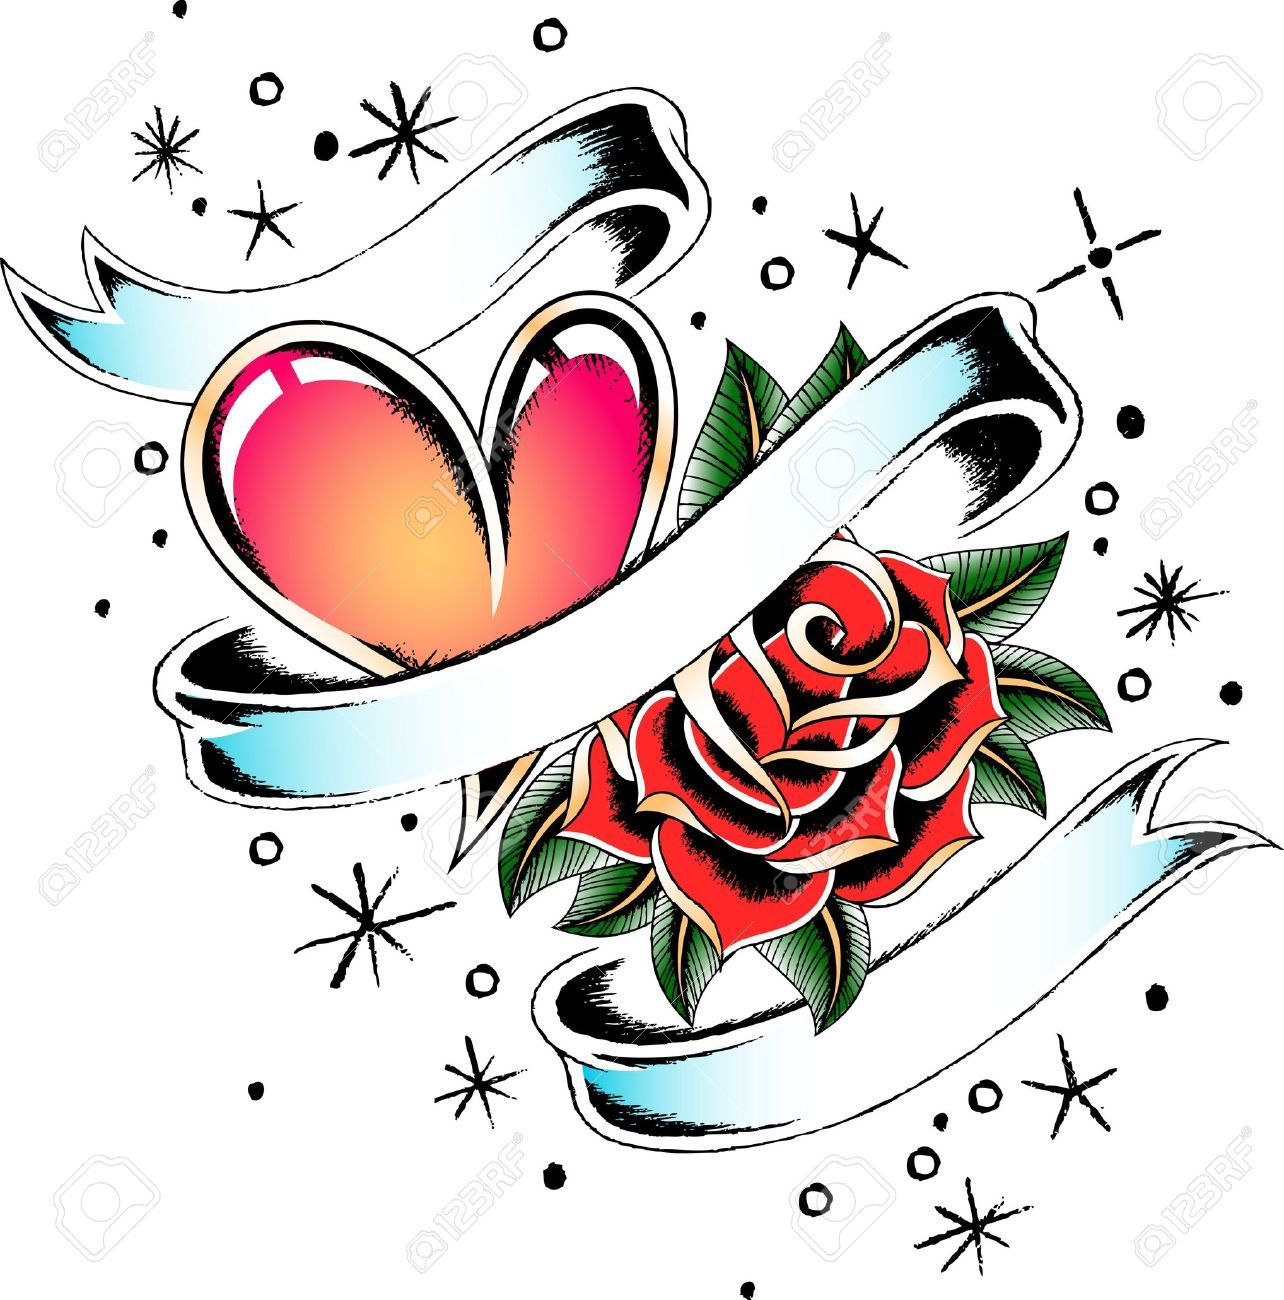 Tattoo Heart With A Banner - Google Search